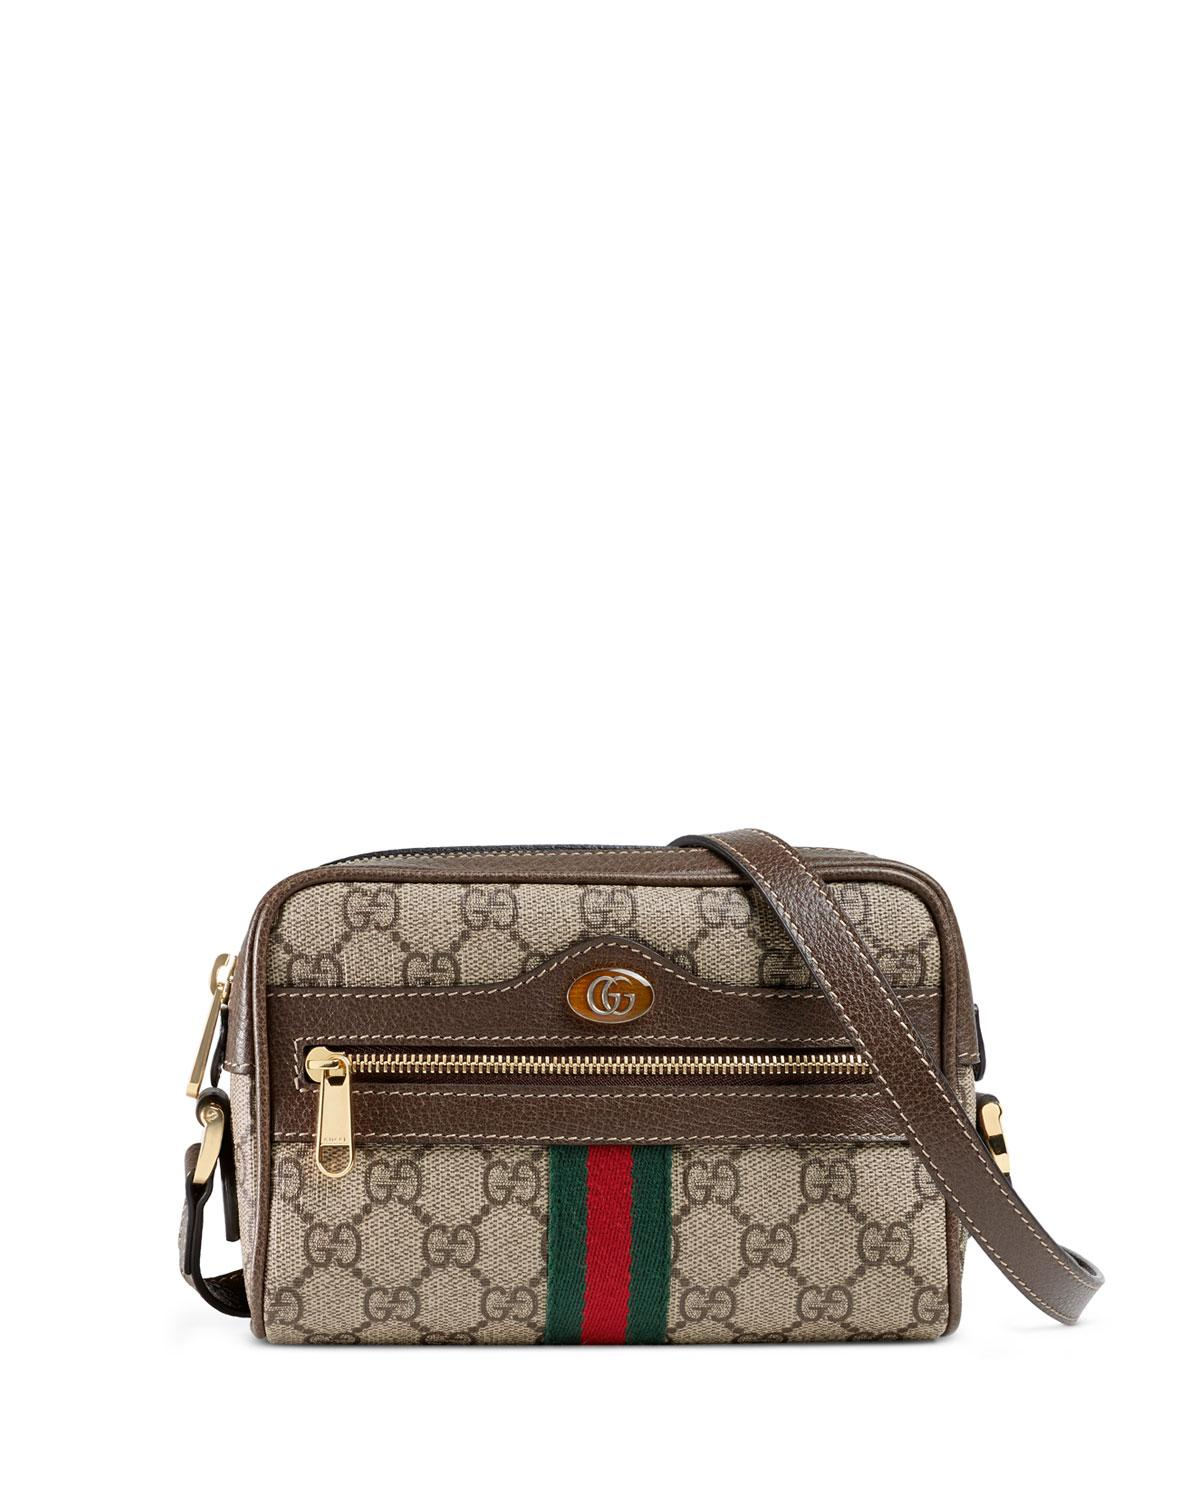 39ded4712a7189 Gucci Ophidia Gg Supreme Mini Bag in Natural - Save 24% - Lyst